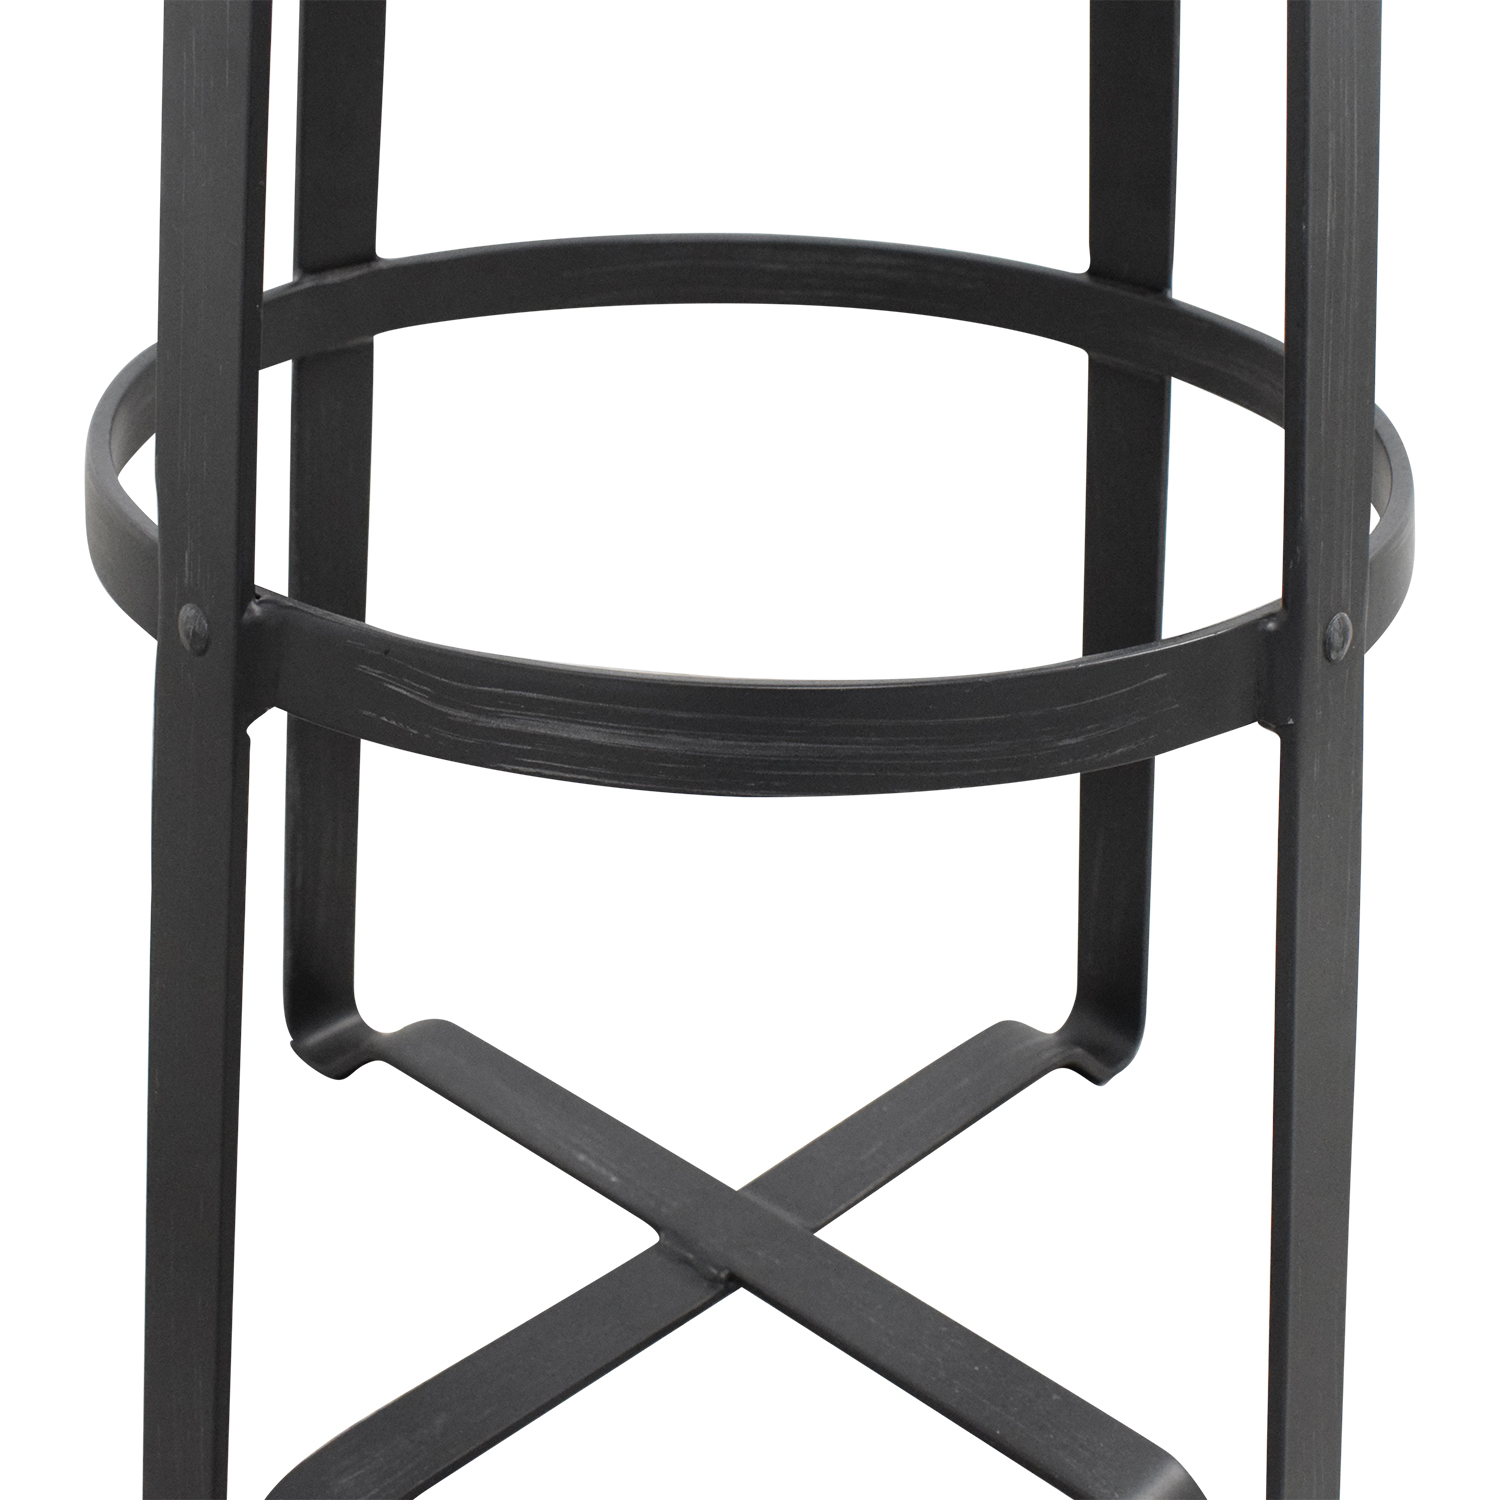 buy West Elm West Elm Adjustable Industrial Stool online